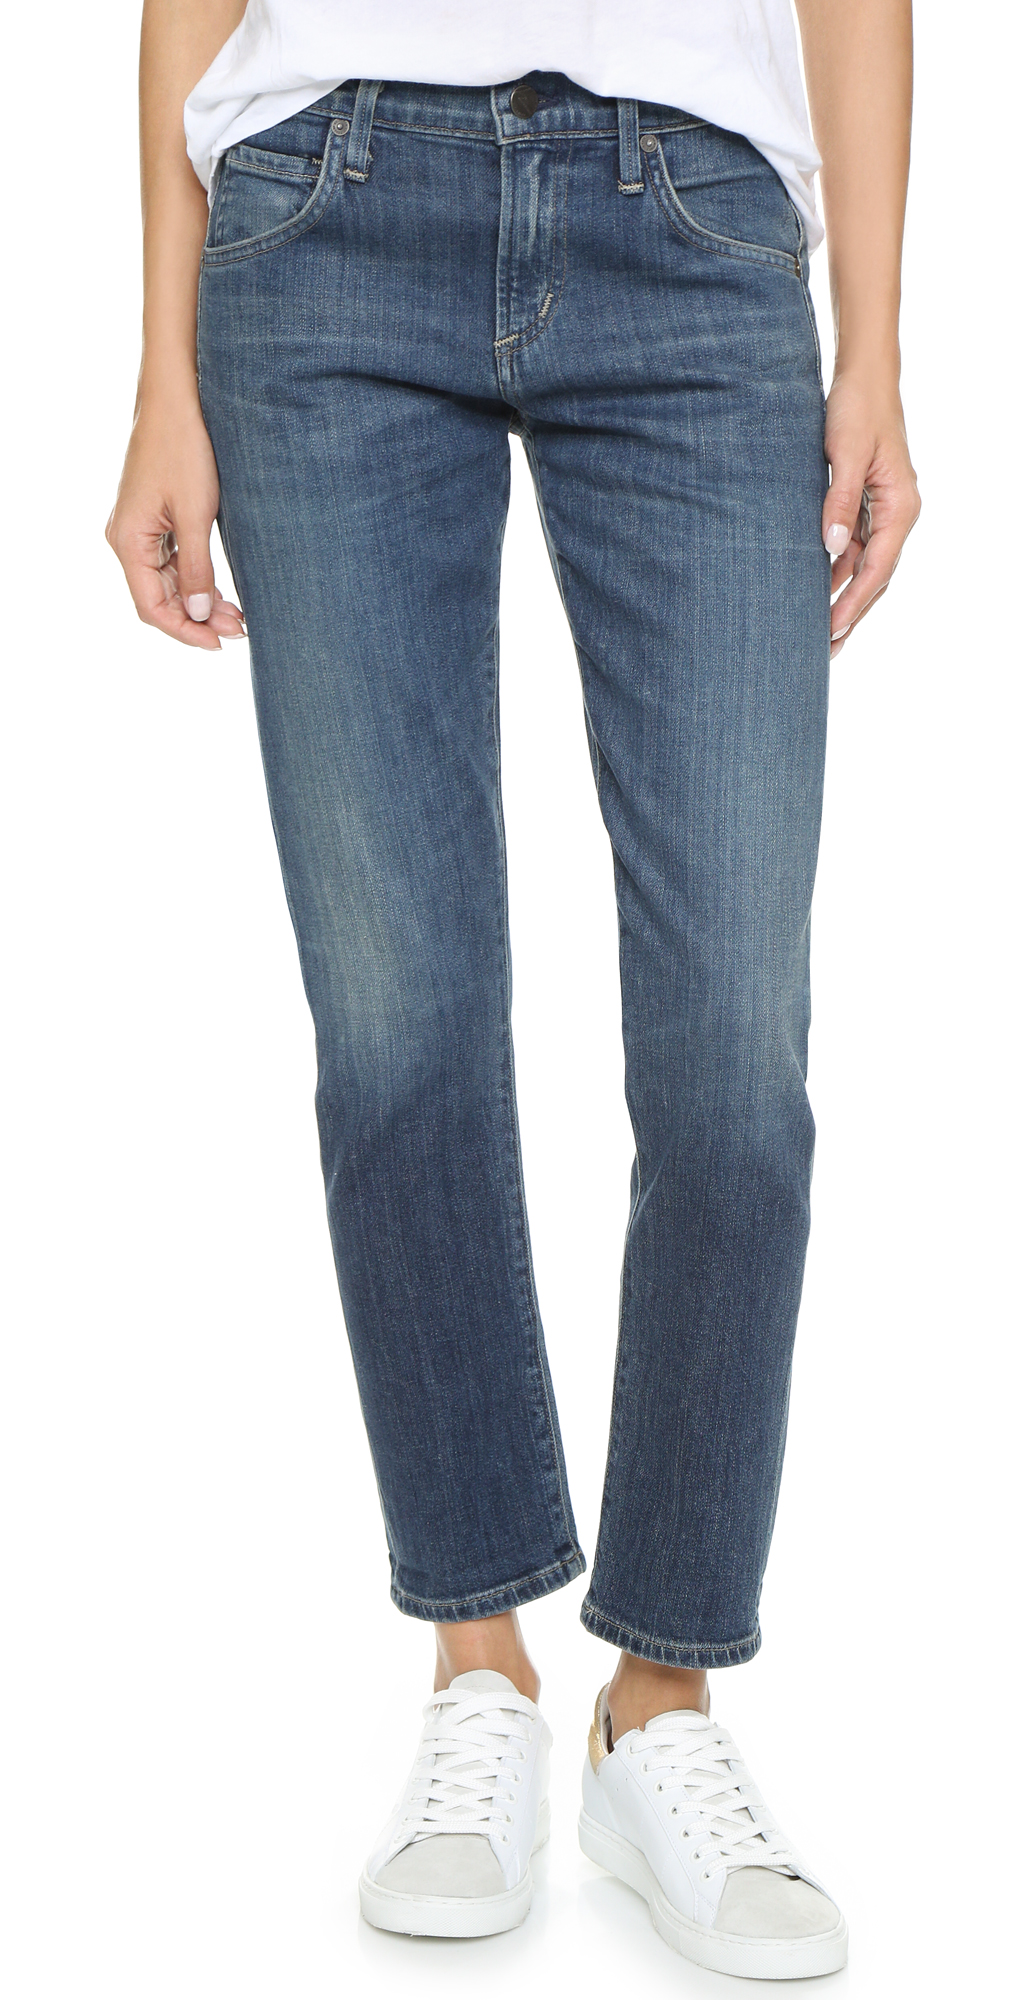 Emerson Slim Boyfriend Ankle Jeans Citizens of Humanity